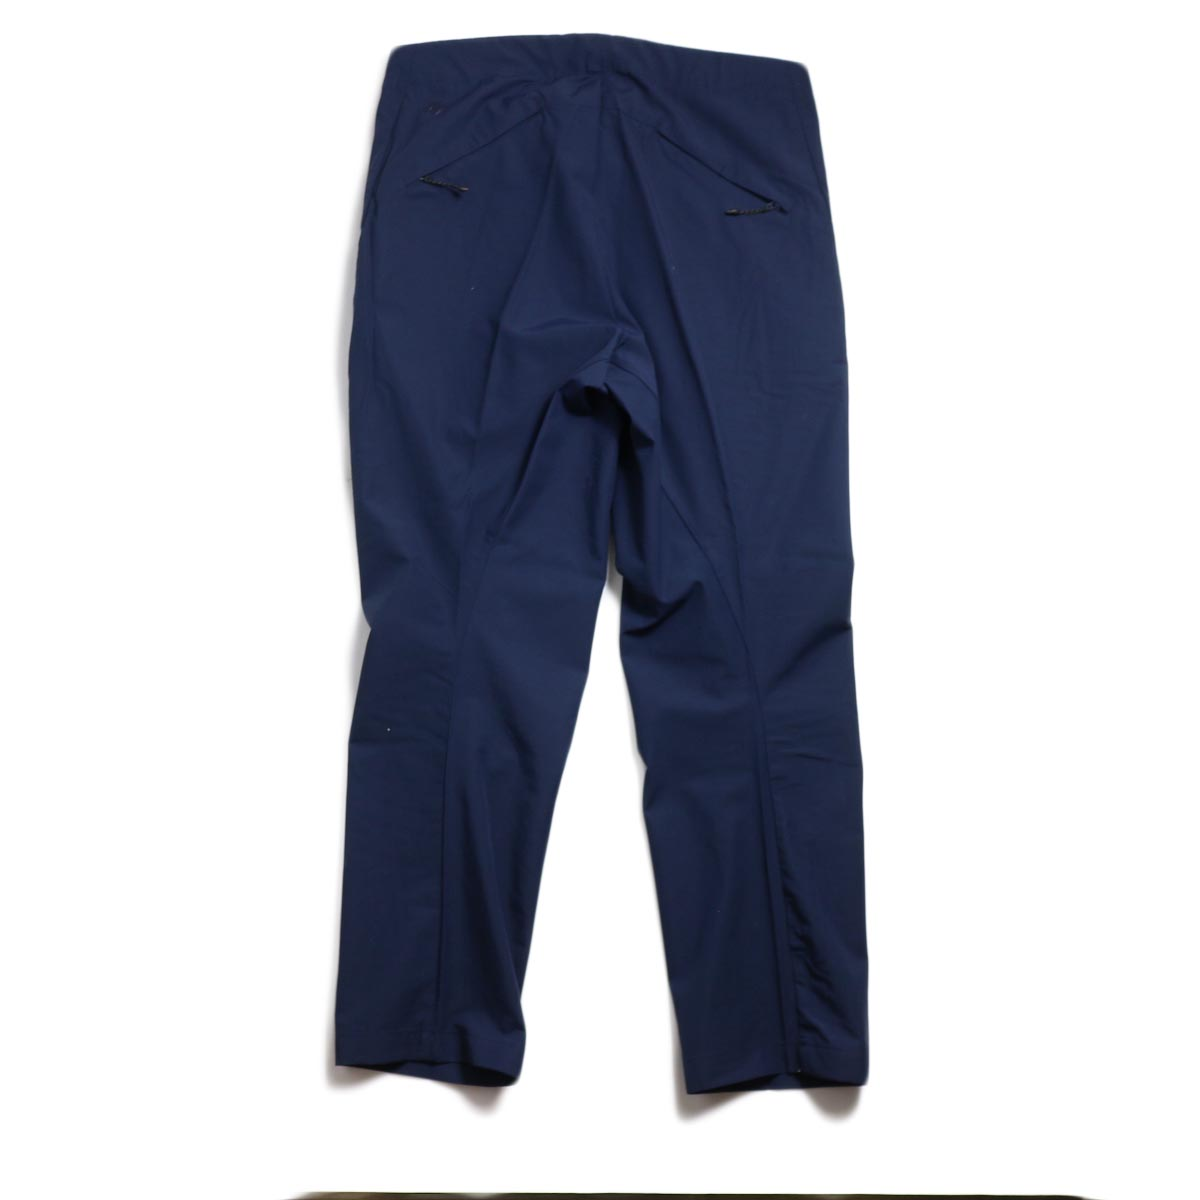 DESCENTE ddd / UNIFIT PANTS -NAVY 背面